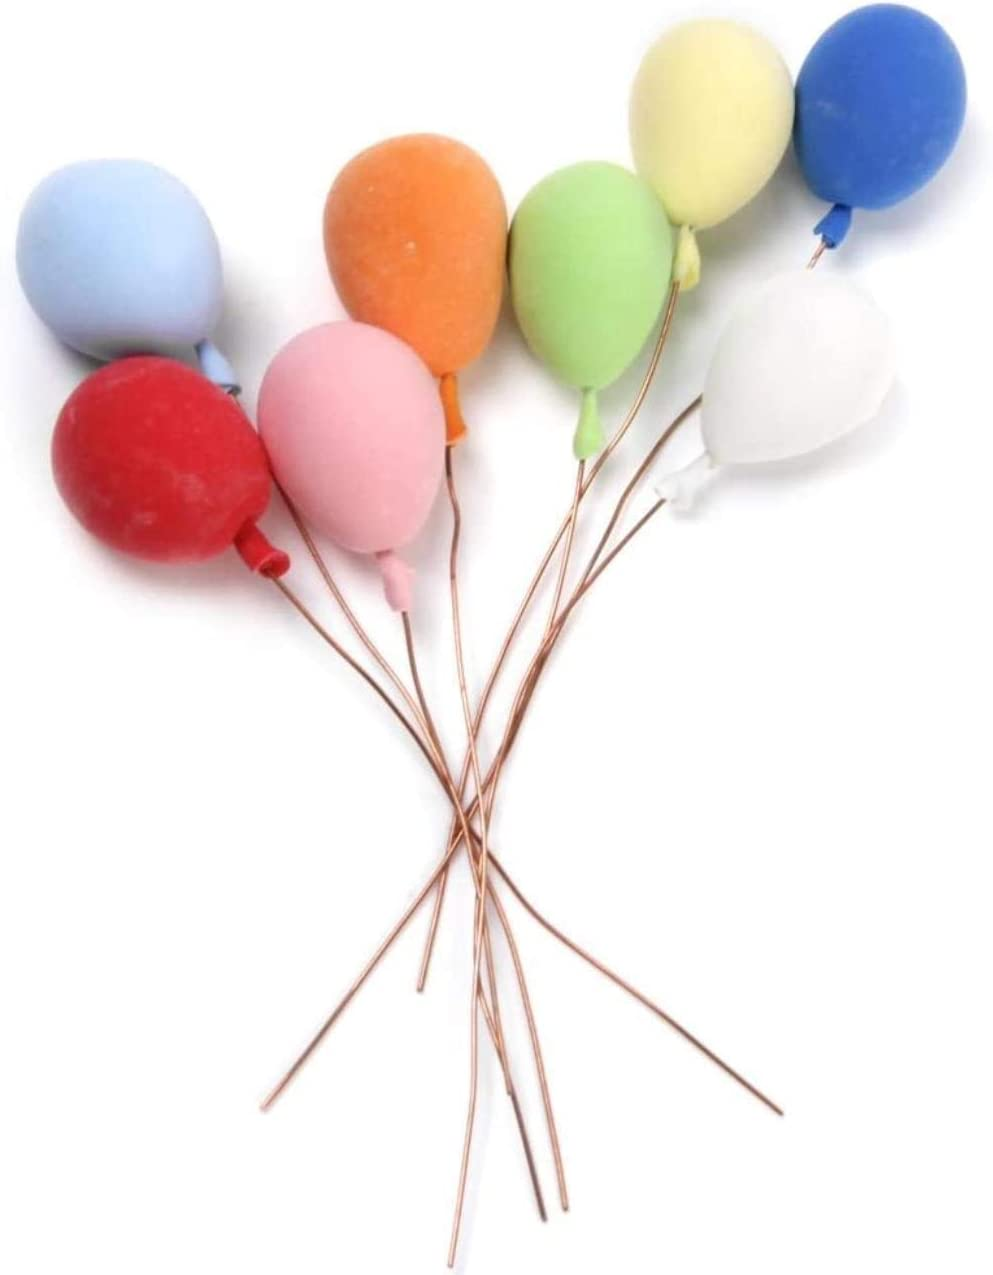 TONG 1 12 Dollhouse Max 63% 67% OFF of fixed price OFF Miniature Mixed Gift Color Foam Balloons